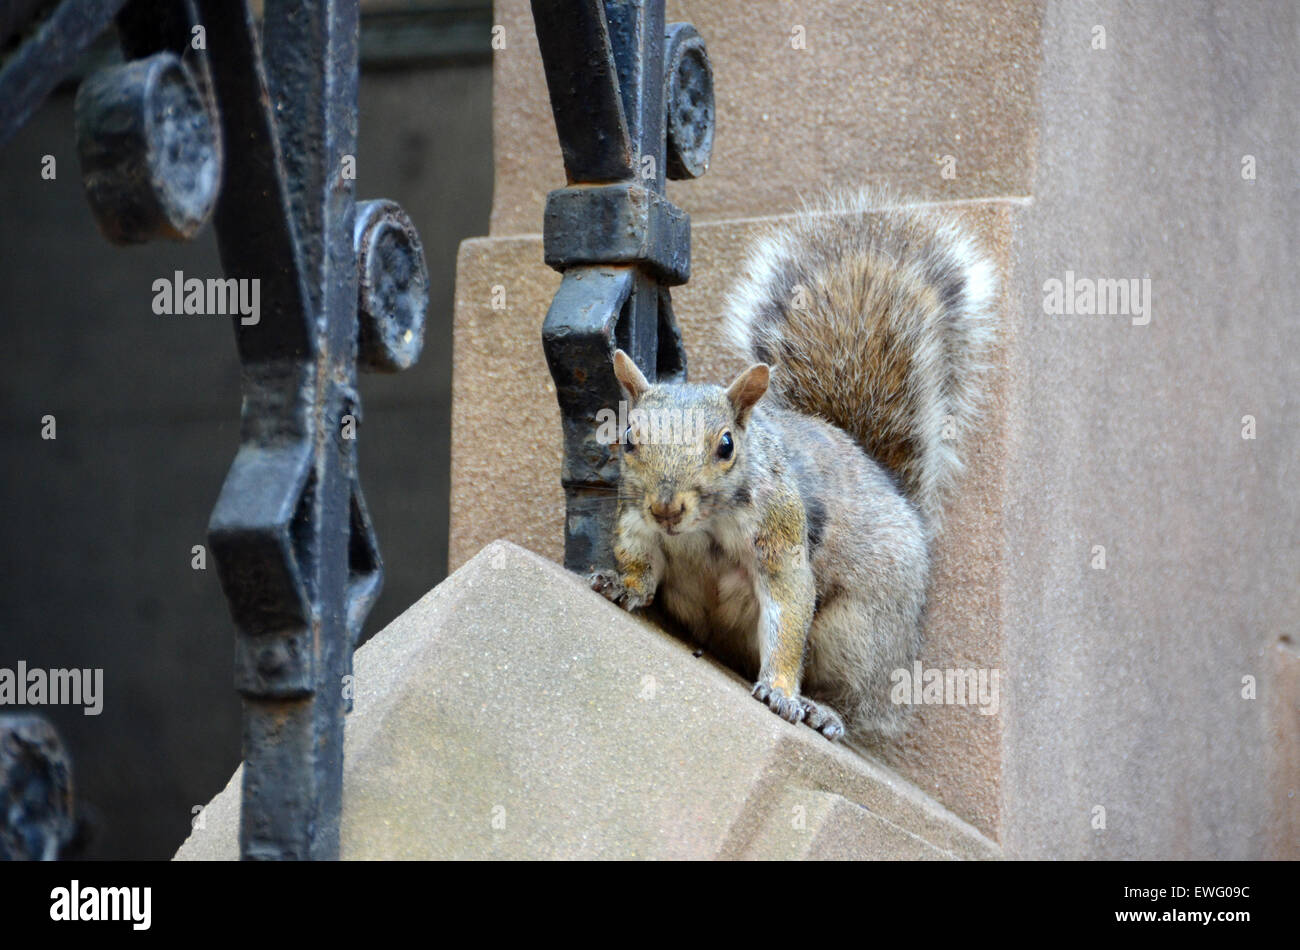 squirrel urban new york house stoop grey gray - Stock Image